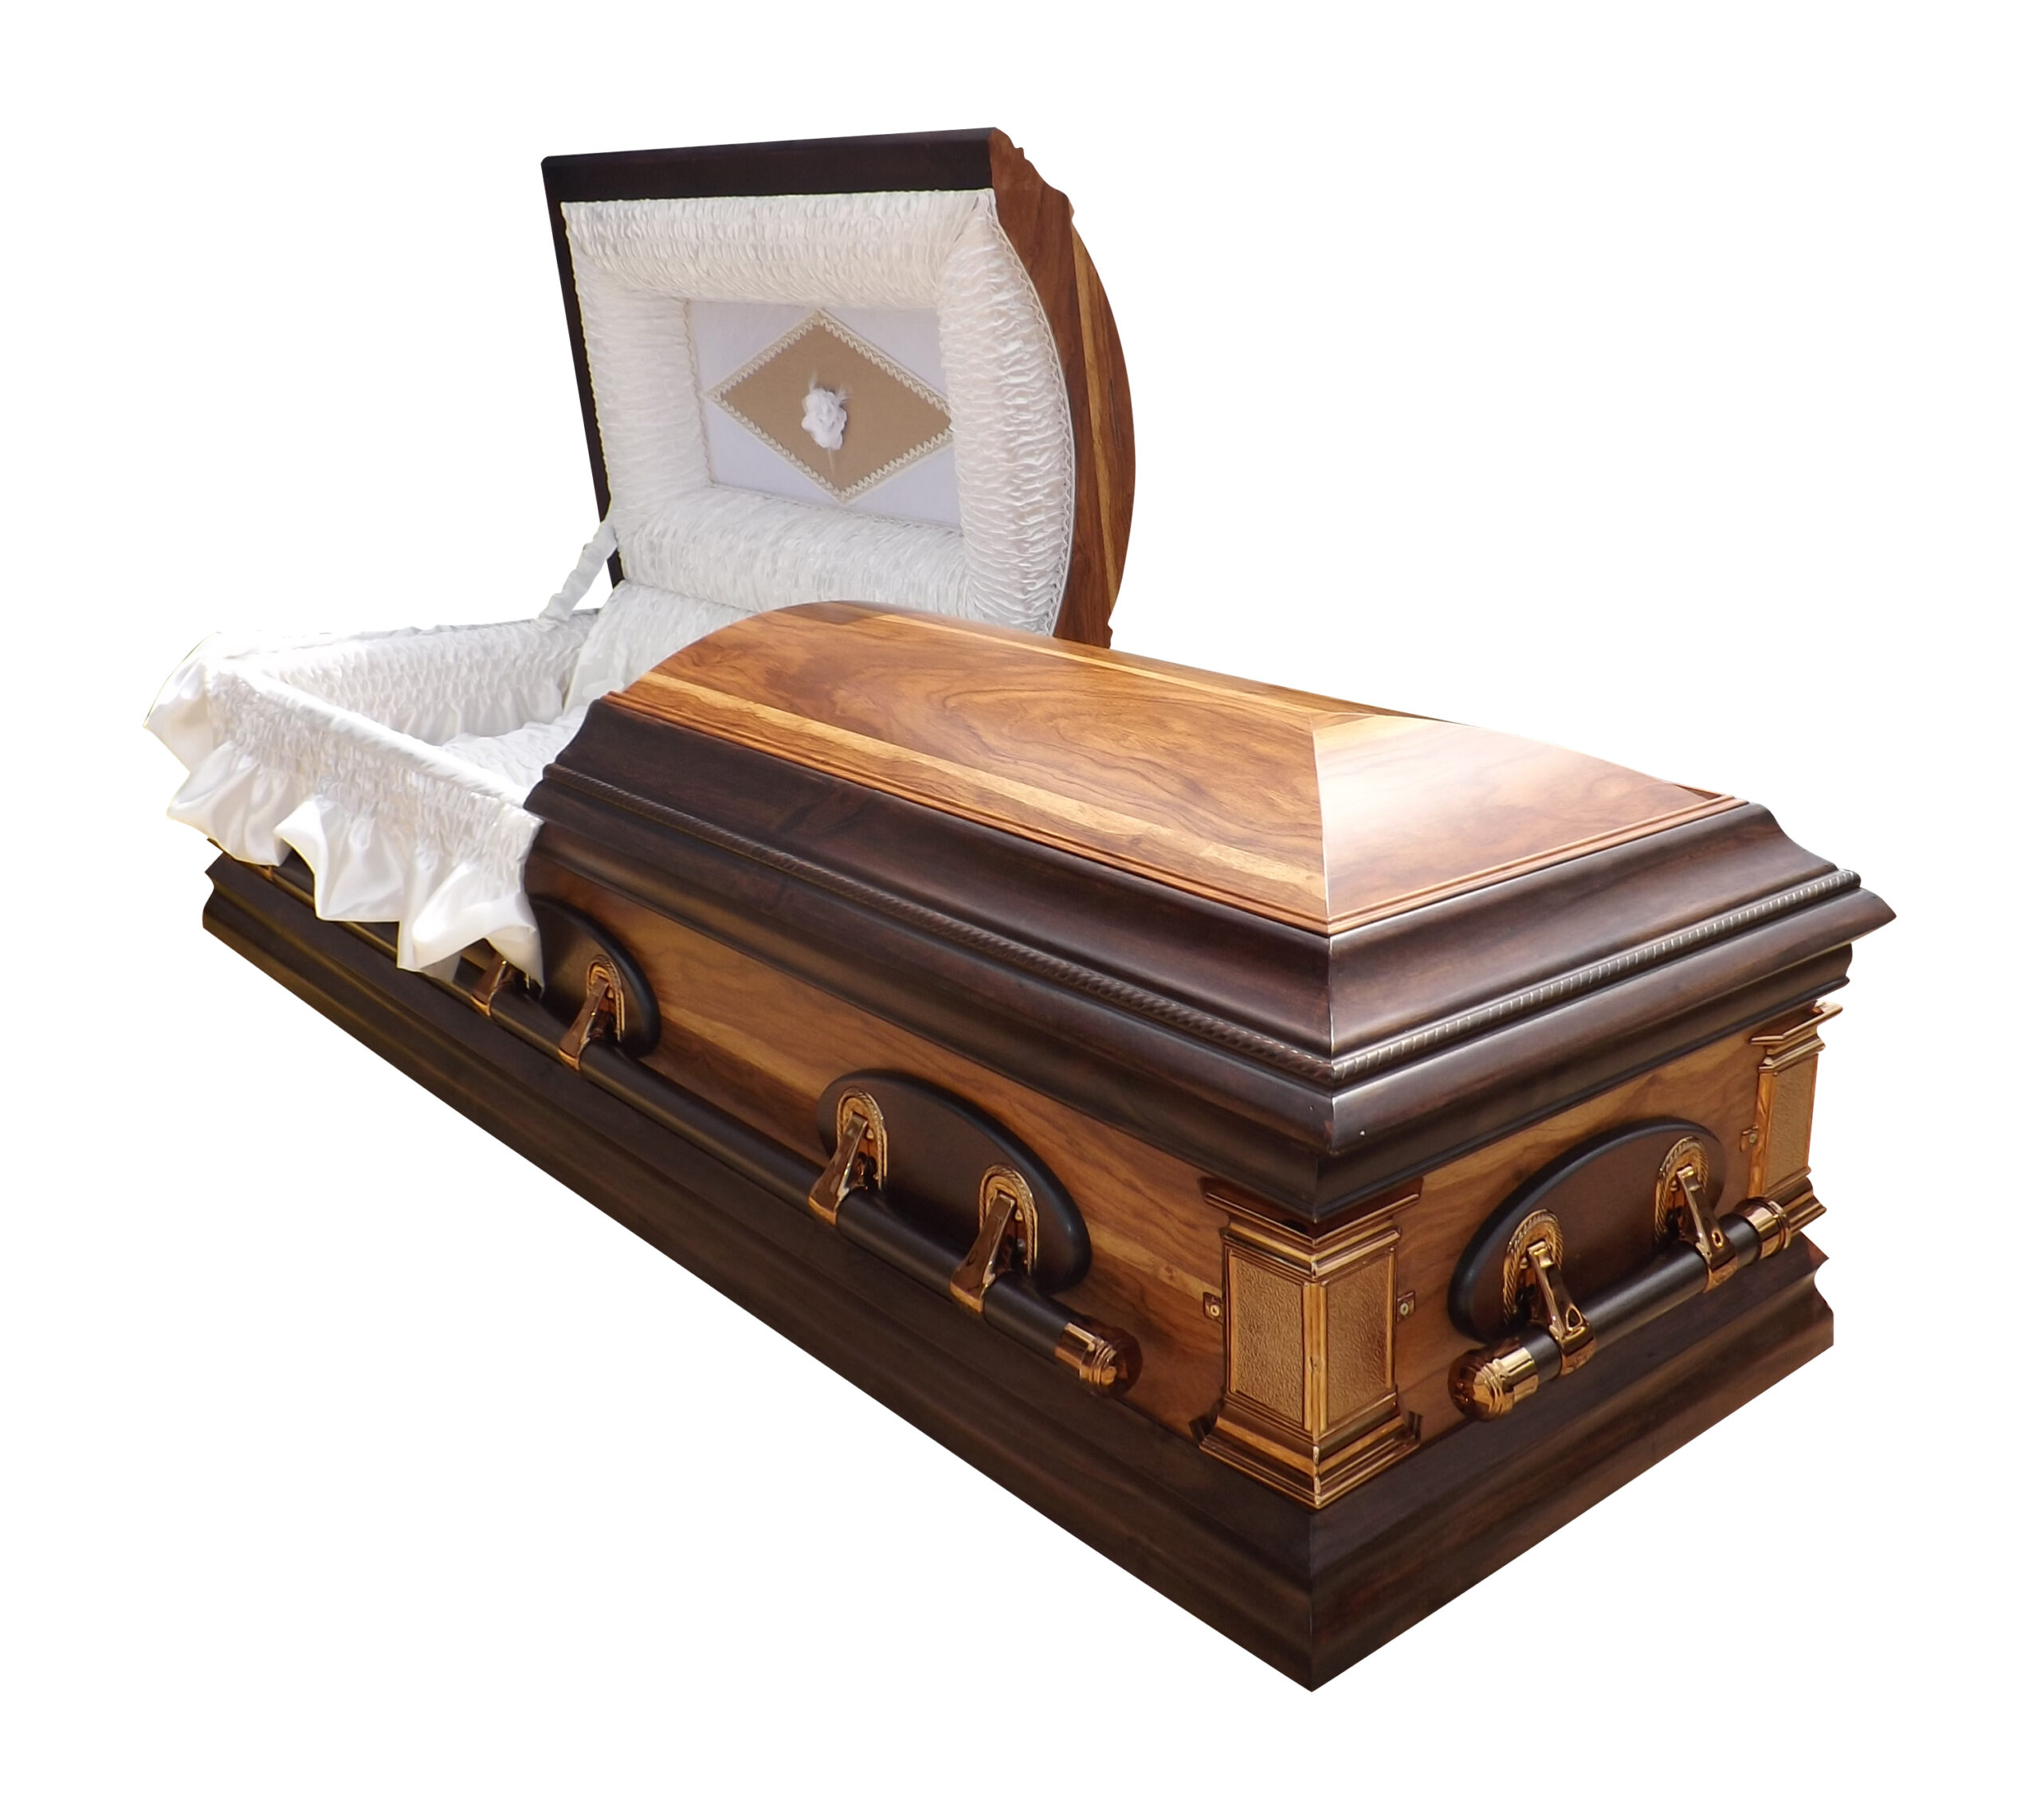 Top Ten Tips for Arranging a Funeral